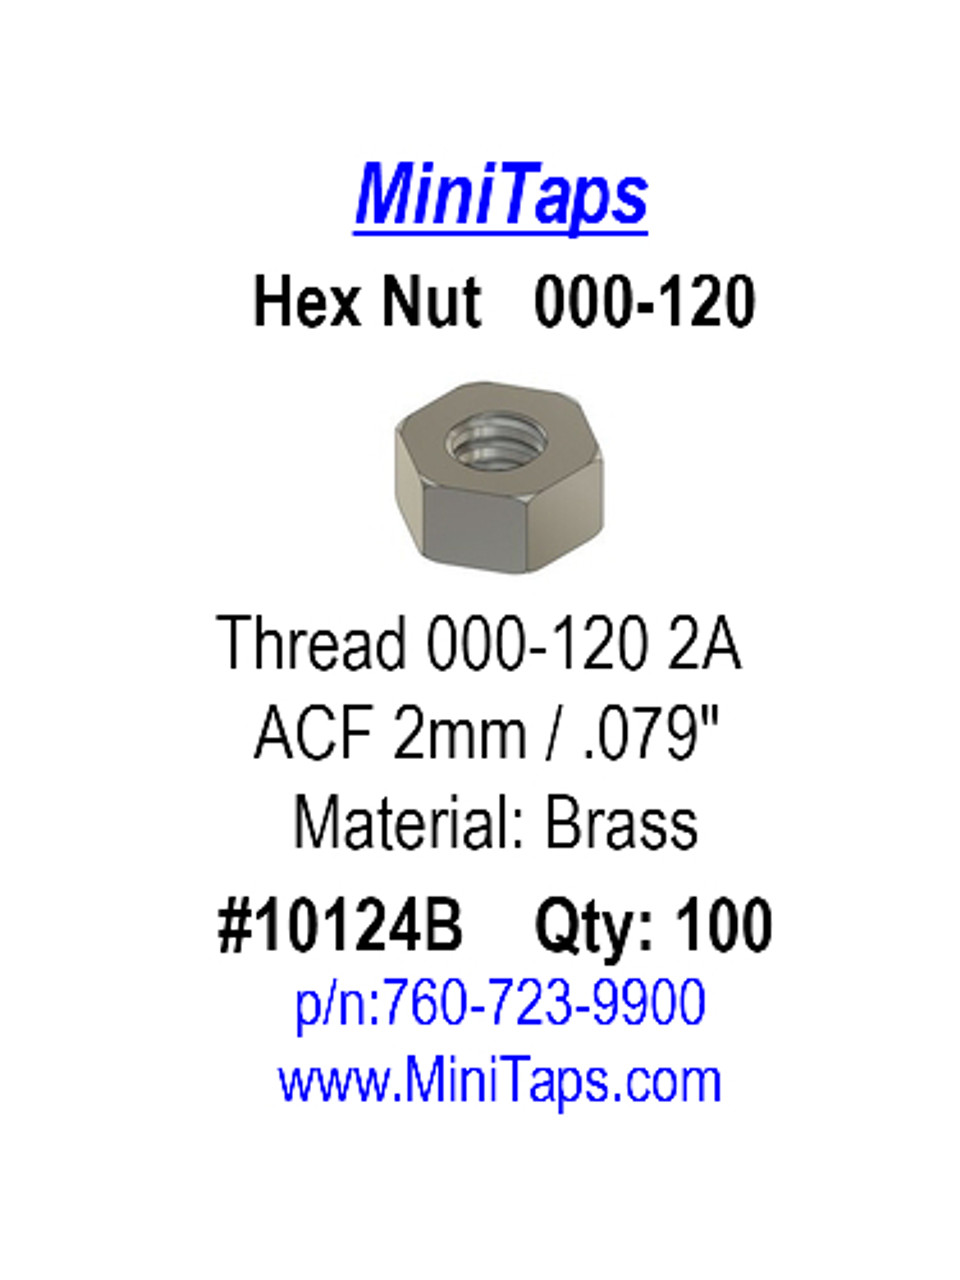 """Picture of products package label Machined Hex Nut Thread 000-120 class 2 thread  ACF 5/64"""" (across the flats) 2.00mm  Thickness 0.39"""" / 1.0mm Material: Brass Part Color Finish natural """"Brass color""""  Price is for 100 count package with bulk pricing available."""